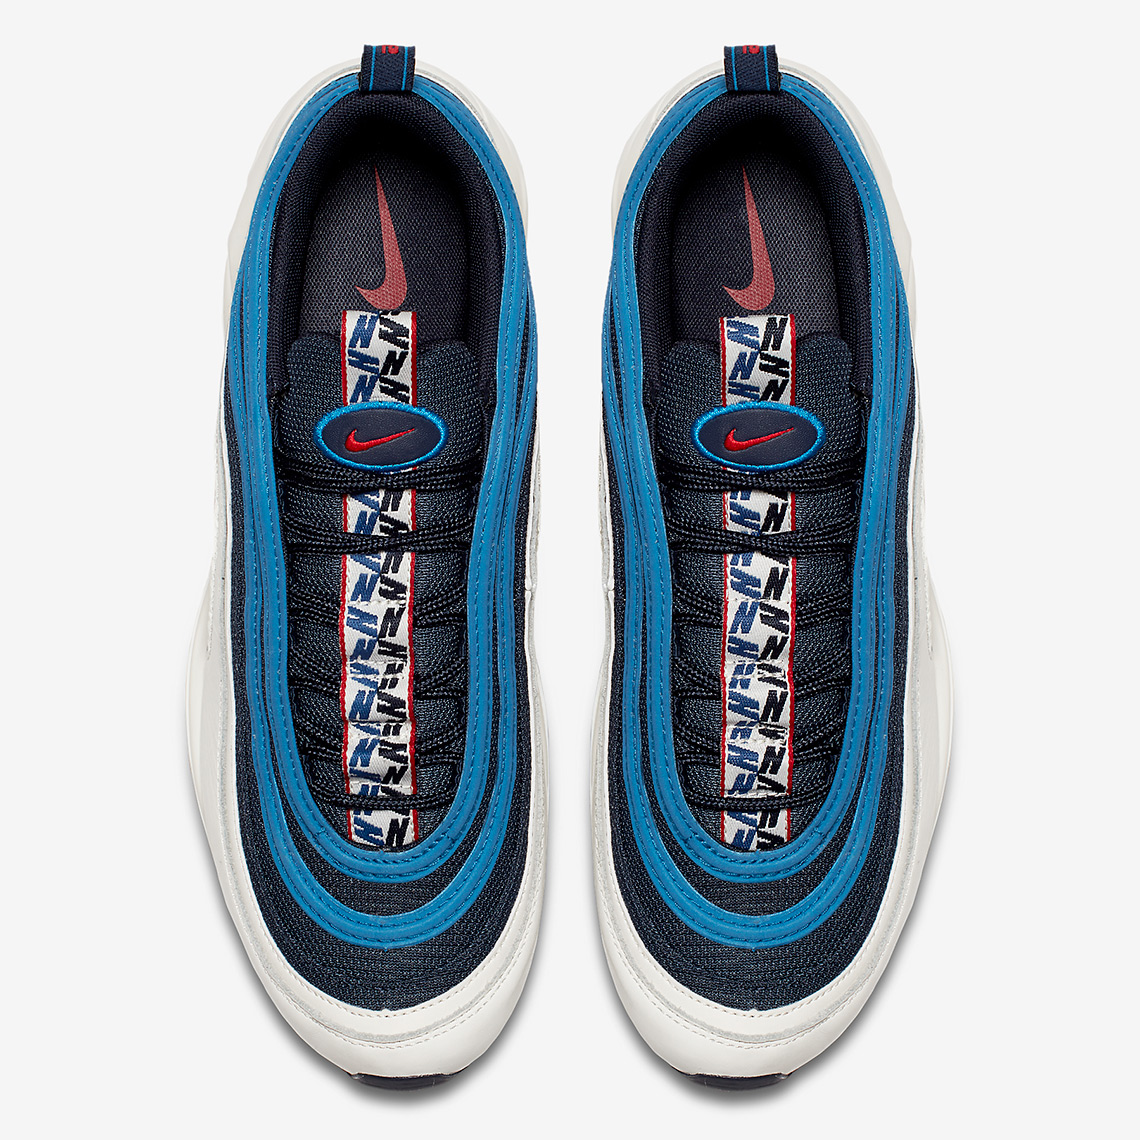 c5b759cf483 Nike Air Max 95 + Air Max 97 Pull Tab Pack Blue Official Images ...